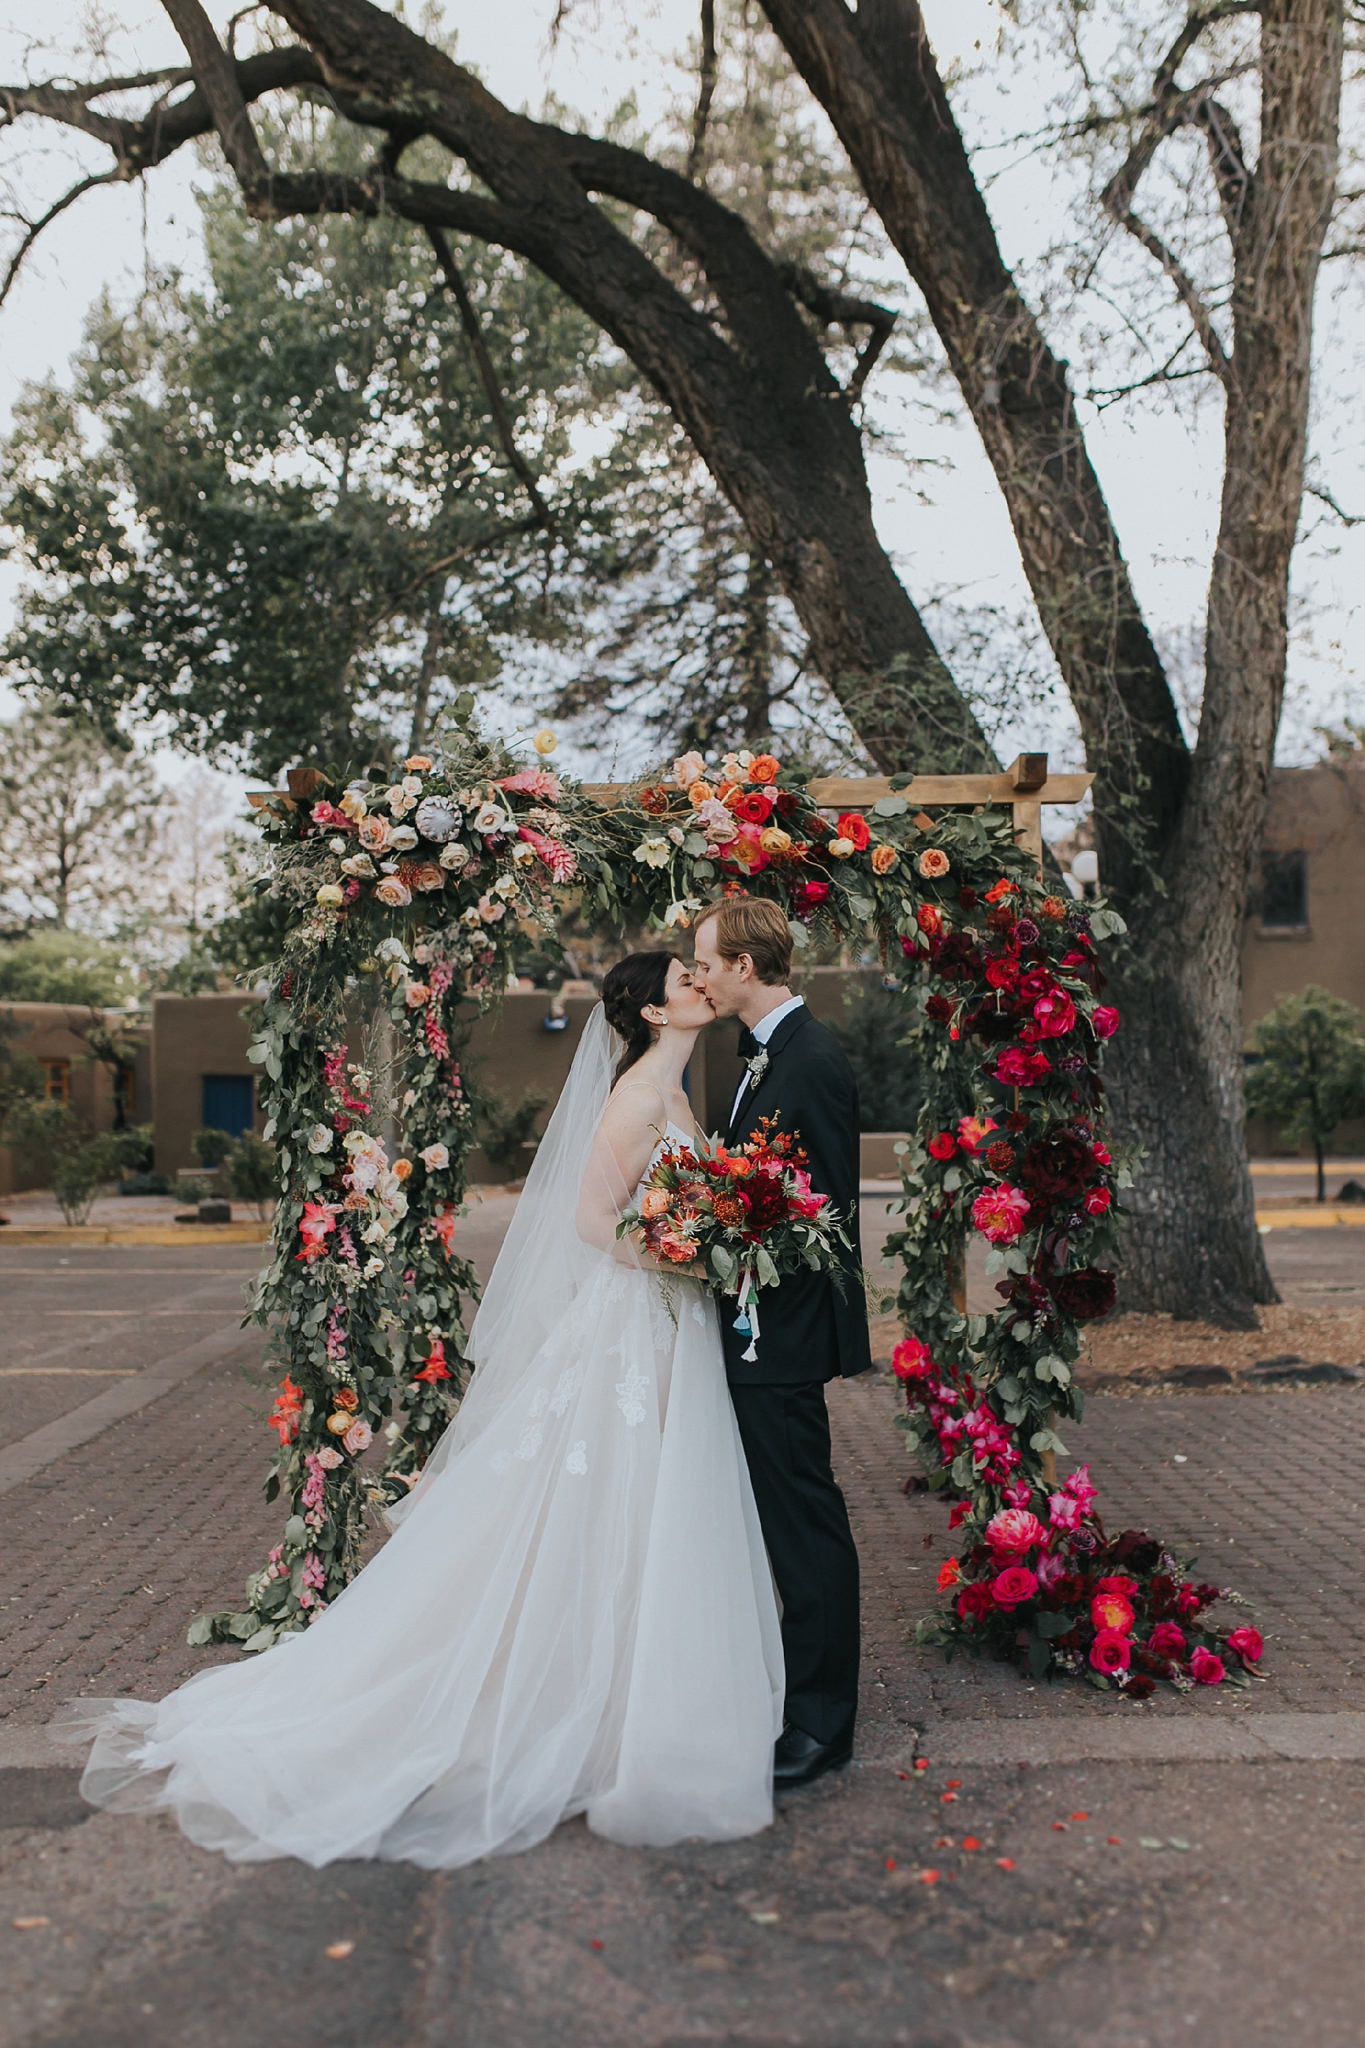 Alicia+lucia+photography+-+albuquerque+wedding+photographer+-+santa+fe+wedding+photography+-+new+mexico+wedding+photographer+-+new+mexico+wedding+-+wedding+gowns+-+bridal+gowns+-+a+line+wedding+gown_0060.jpg